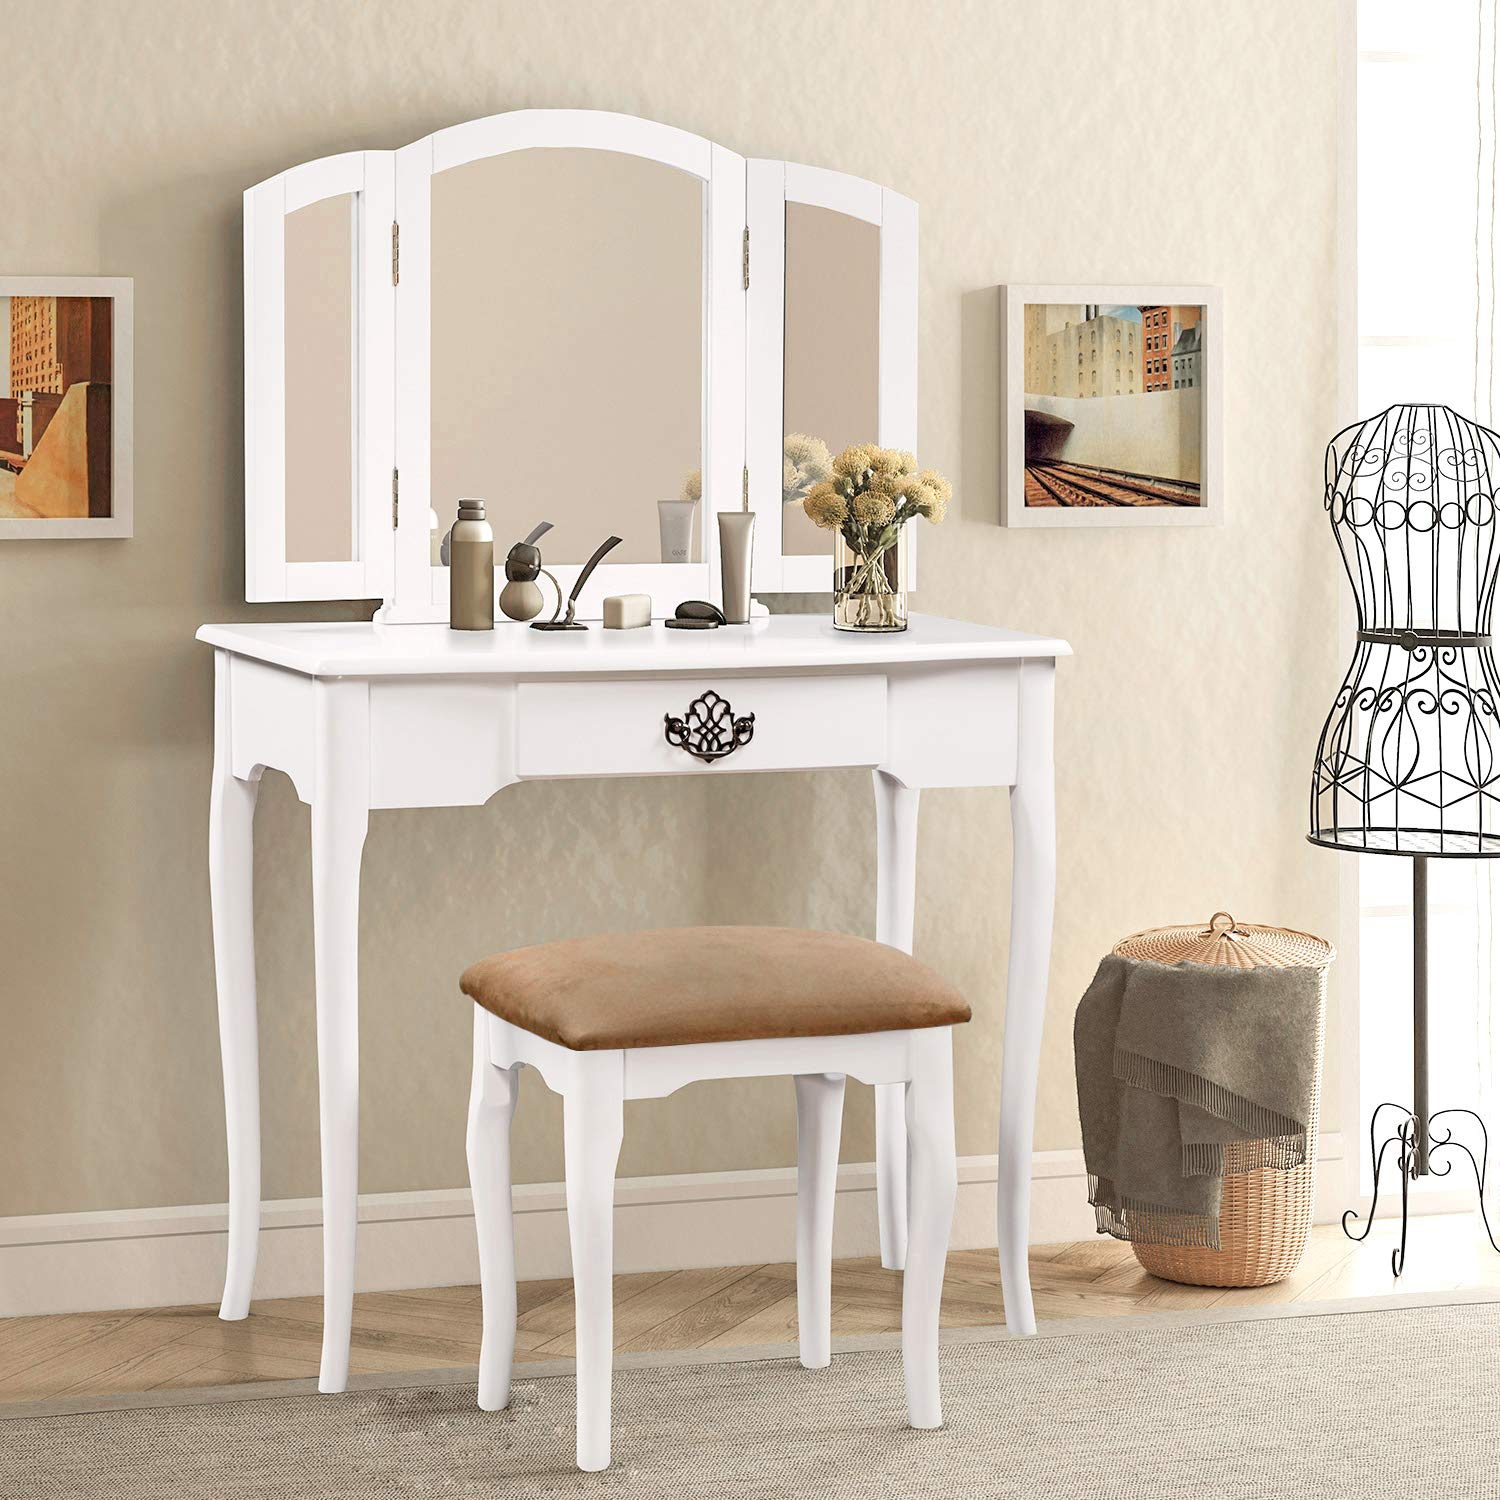 CAMANDE Vanity Set Make-up Dressing Table with Mirror and Cushioned Stool (White)